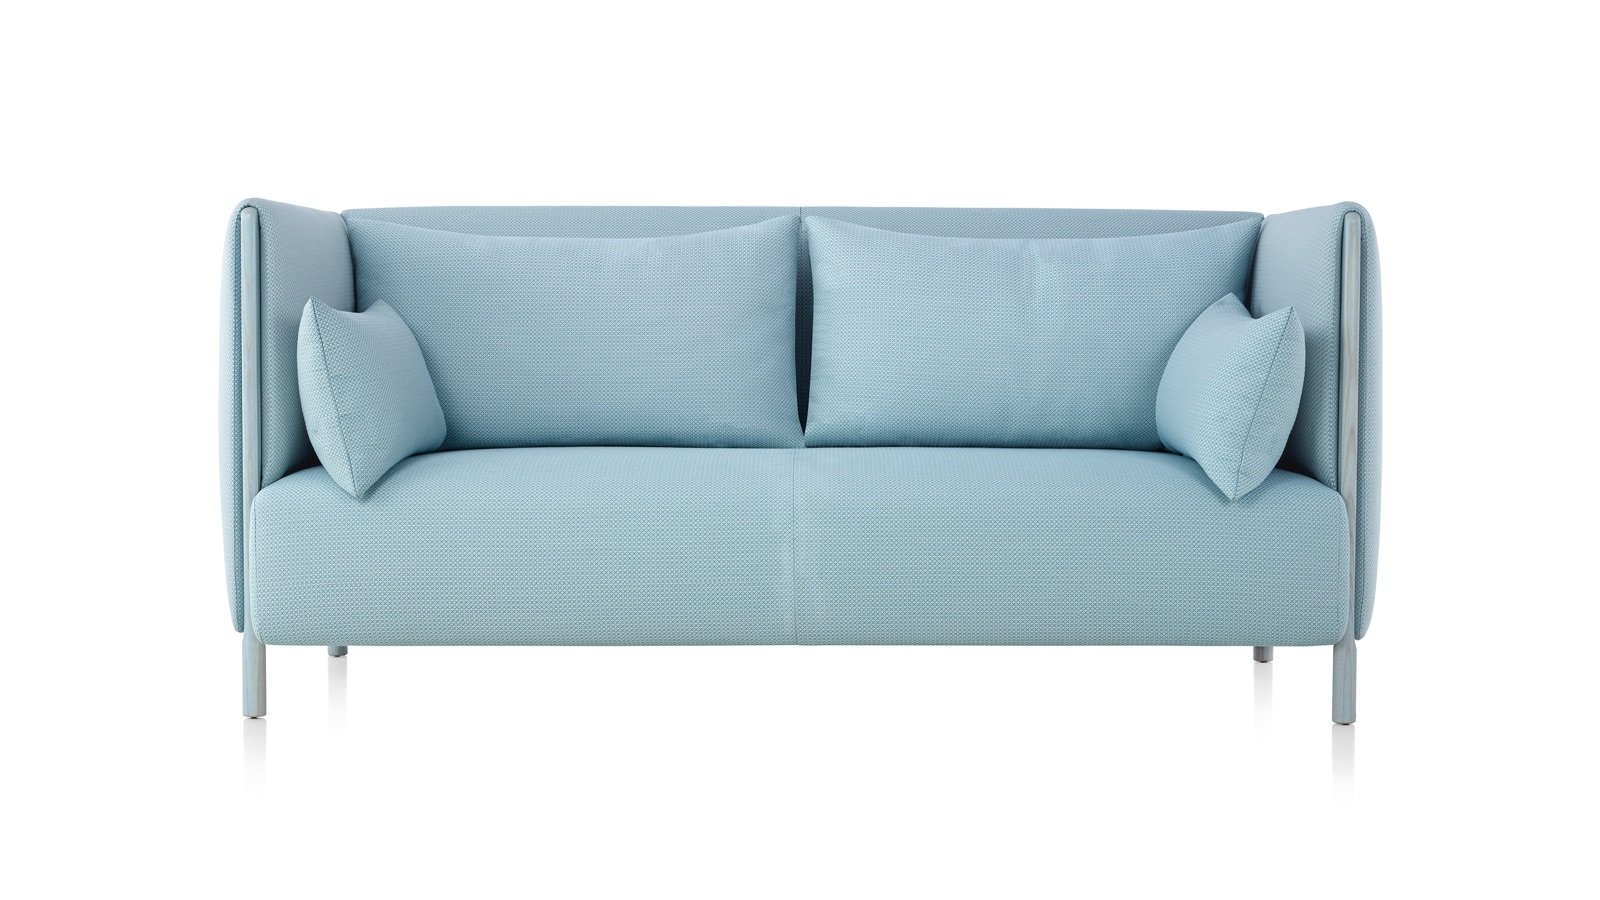 White sweep image of a two-seat sofa from the ColourForm Sofa Group.